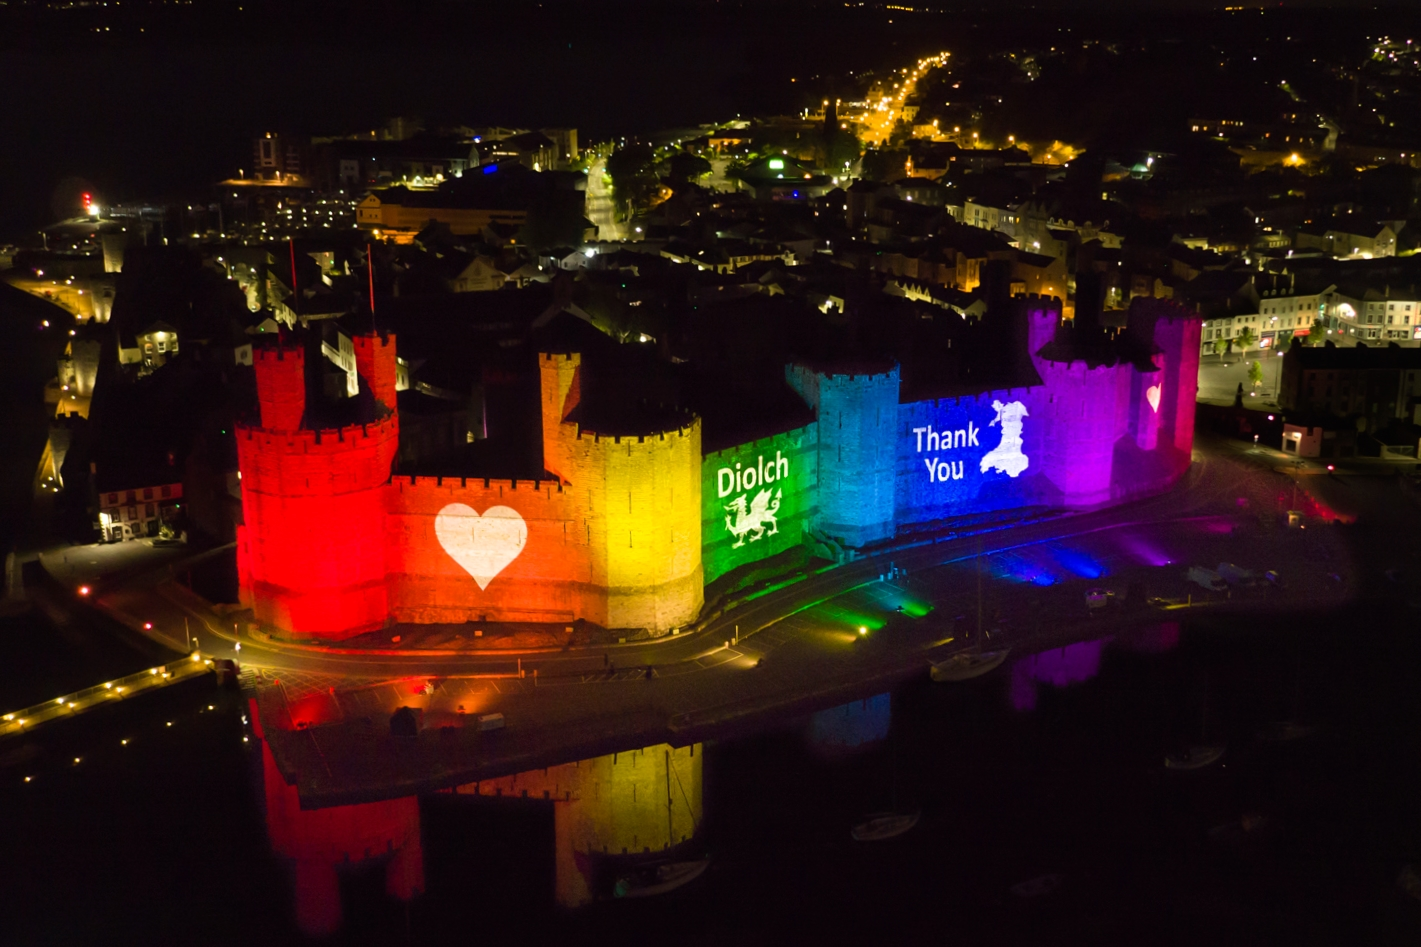 Caernarfon Castle Lit Rainbow Lights Lighting NHS 0176DIP